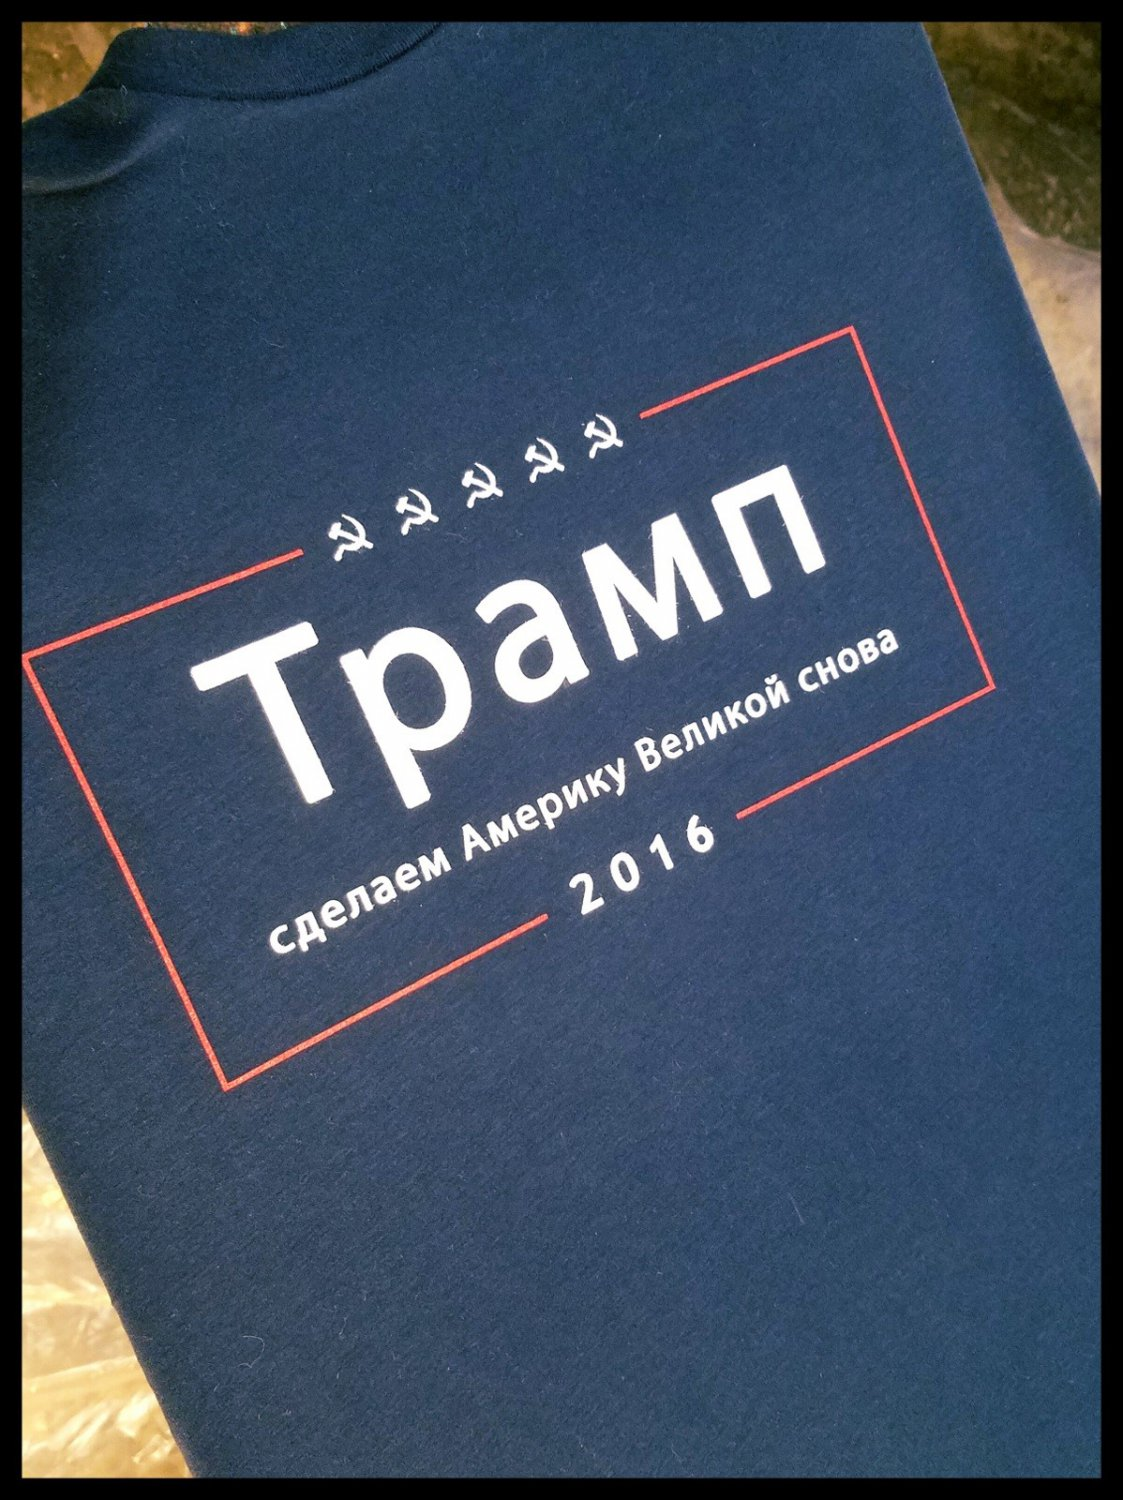 TRUMP CAMPAIGN SHIRT Completely in Russian - NAVY BLUE Premium Sueded T Shirt SIZE L